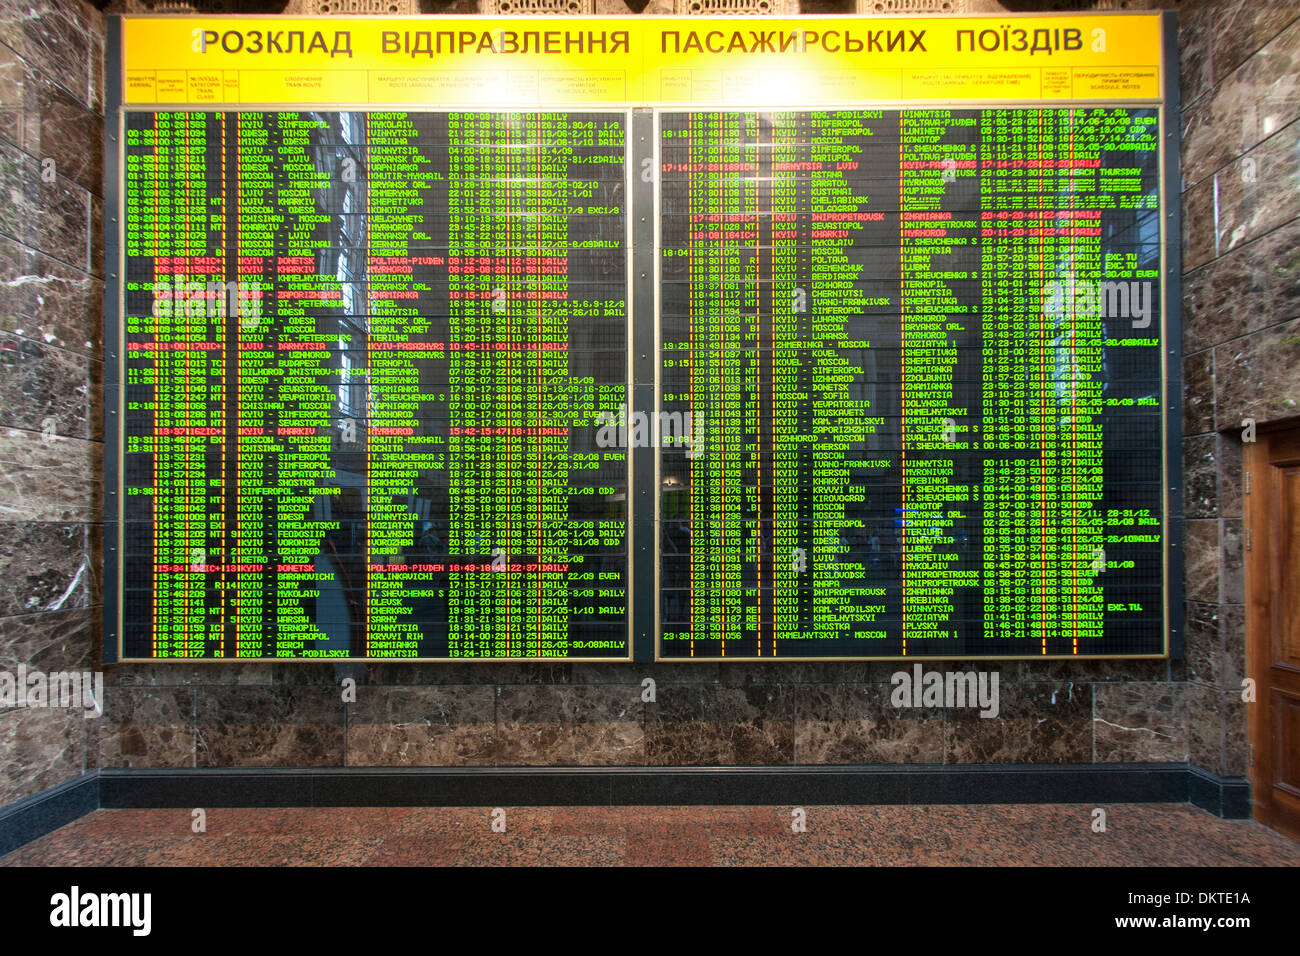 Train arrivals and departures board in the central train station in Kiev, the capital of Ukraine. - Stock Image